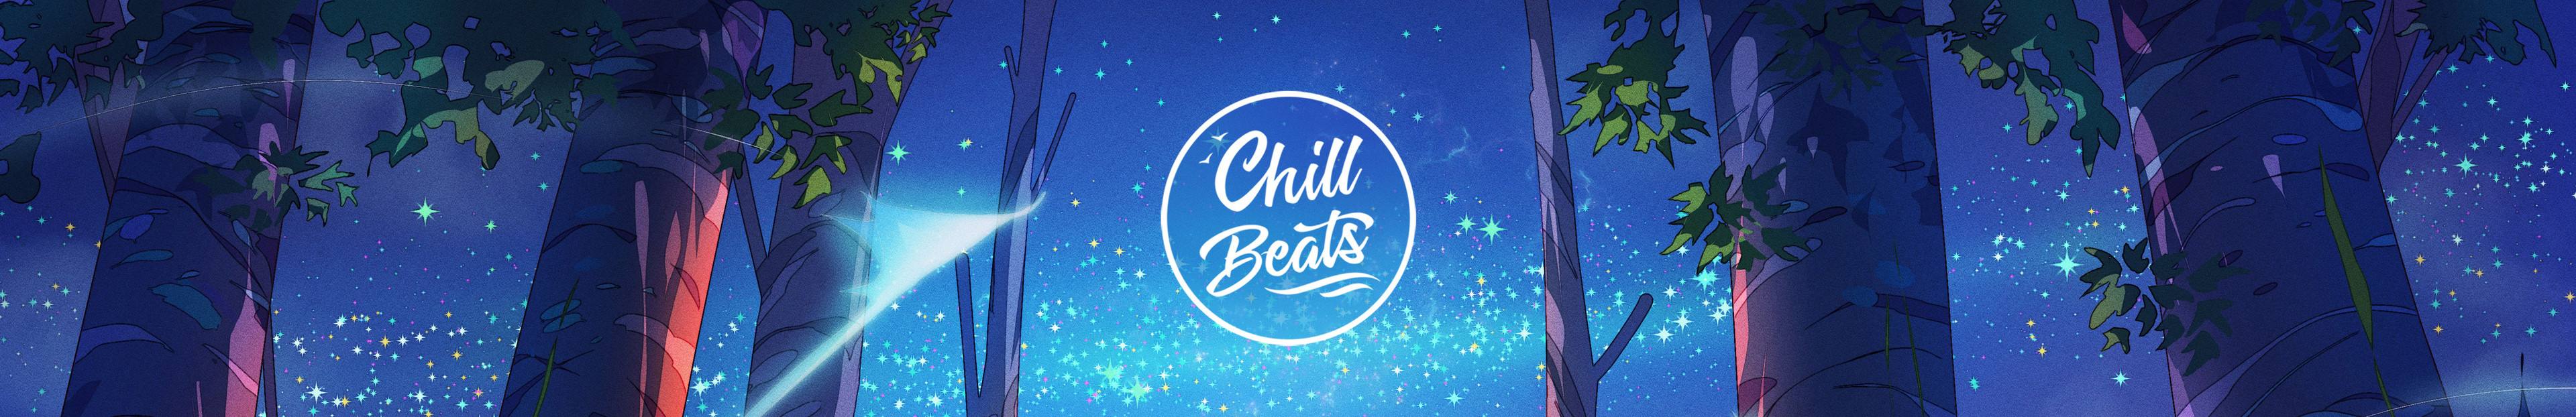 Cover Illustrations for Chill Beats Records and the various music artists in collaboration